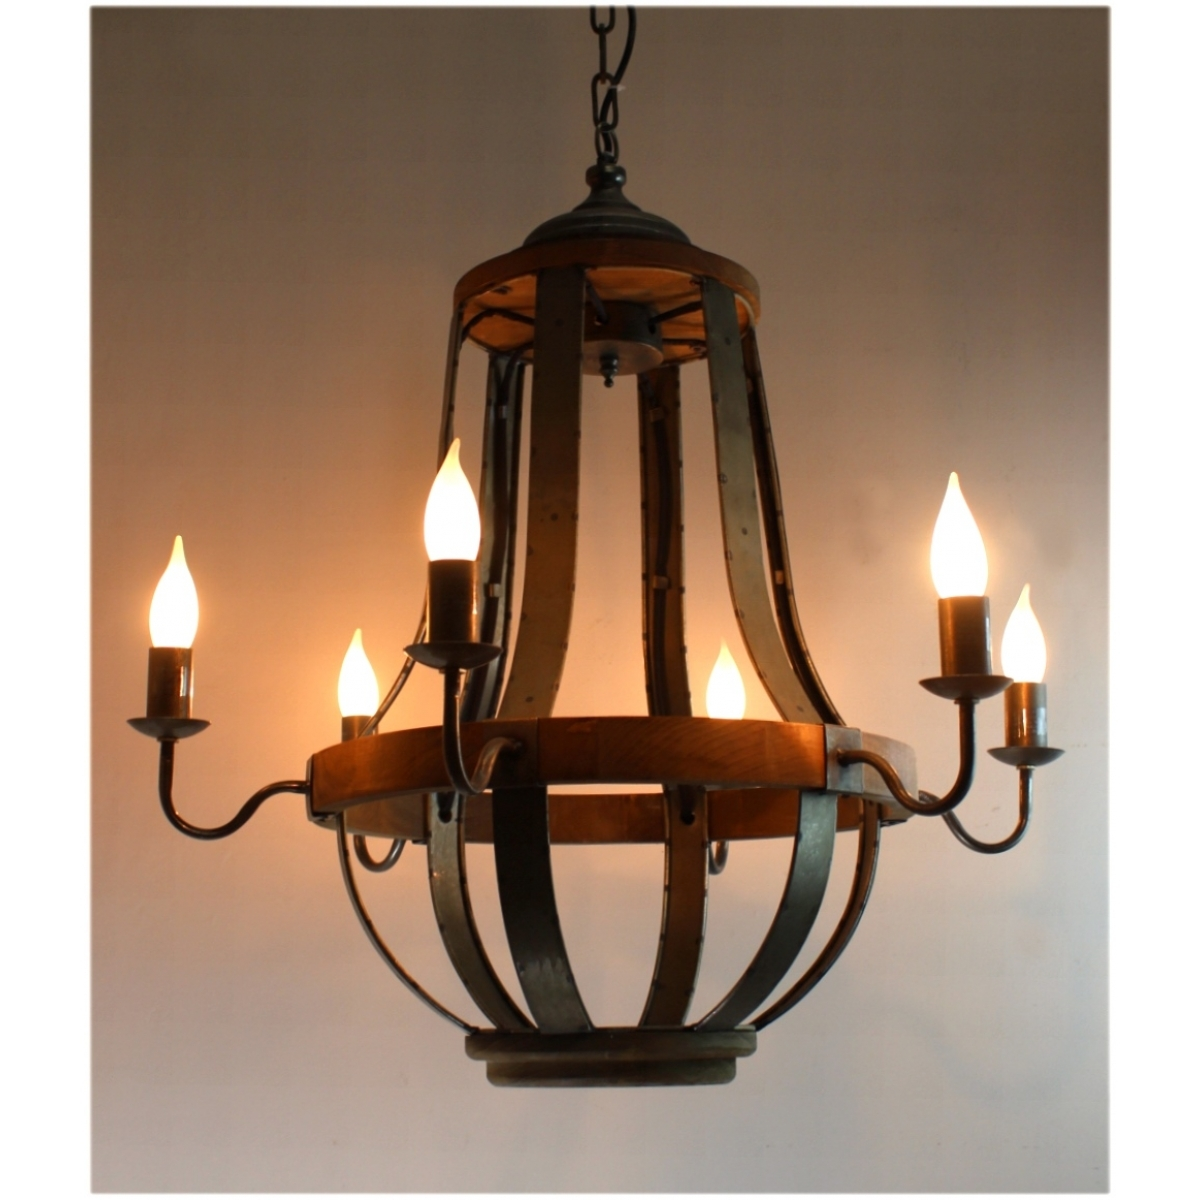 579 Iron Strap And Aged Wood Chandelier French Country Vintage In Vintage Style Chandelier (Image 2 of 15)